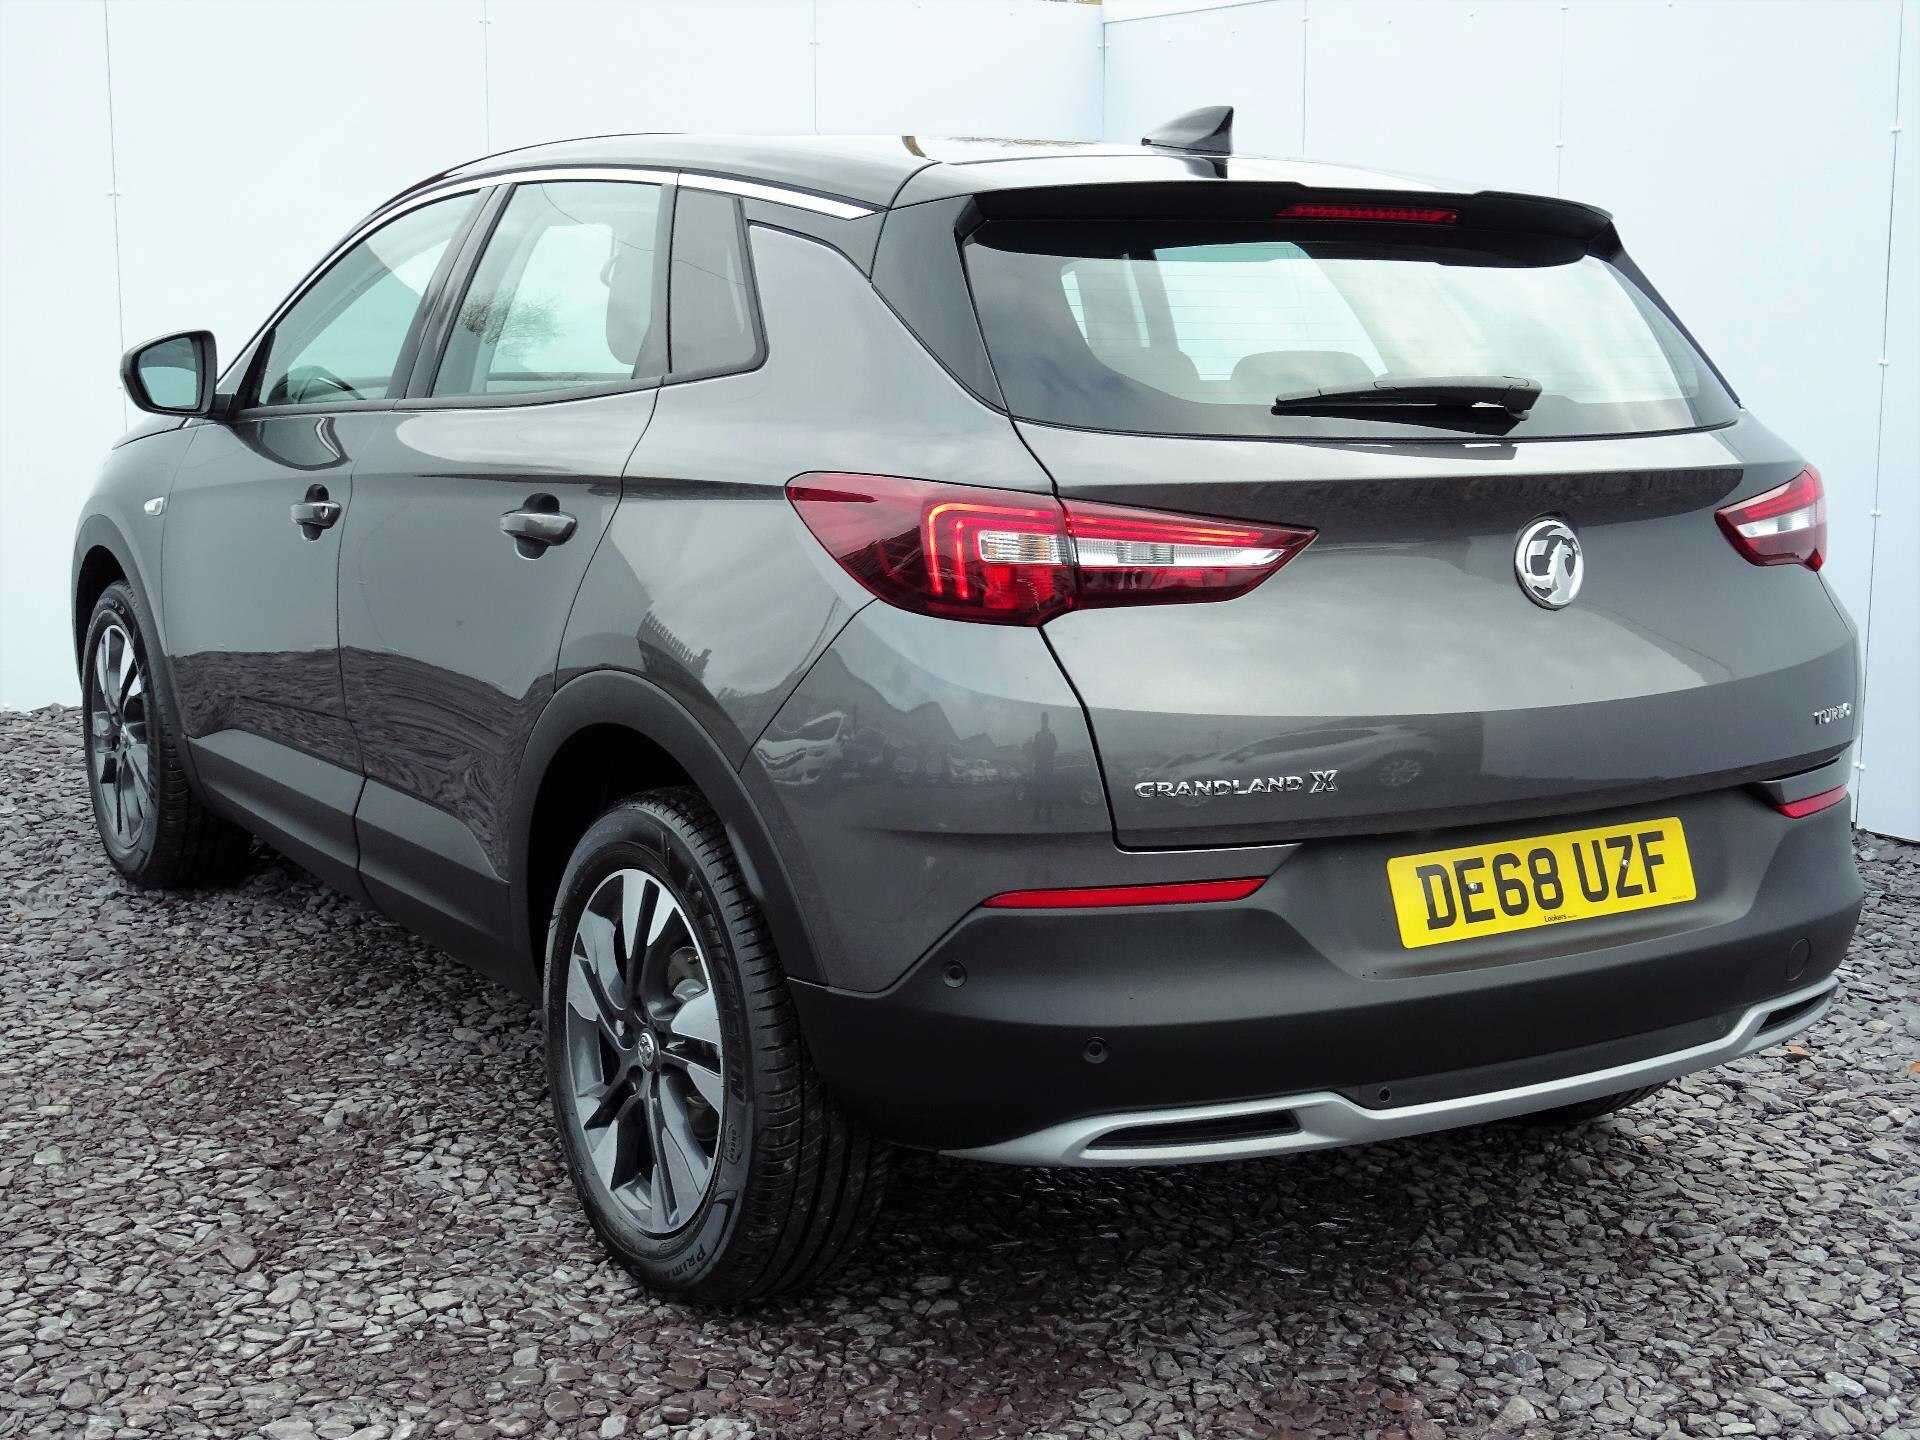 Large photo 7 for 2018/68 VAUXHALL GRANDLAND X/68 VAUXHALL GRANDLAND X 1.2T SPORT NAV 5DR**JUST 380 MILES**IMMEDIATE DELIVERY**(VXL)